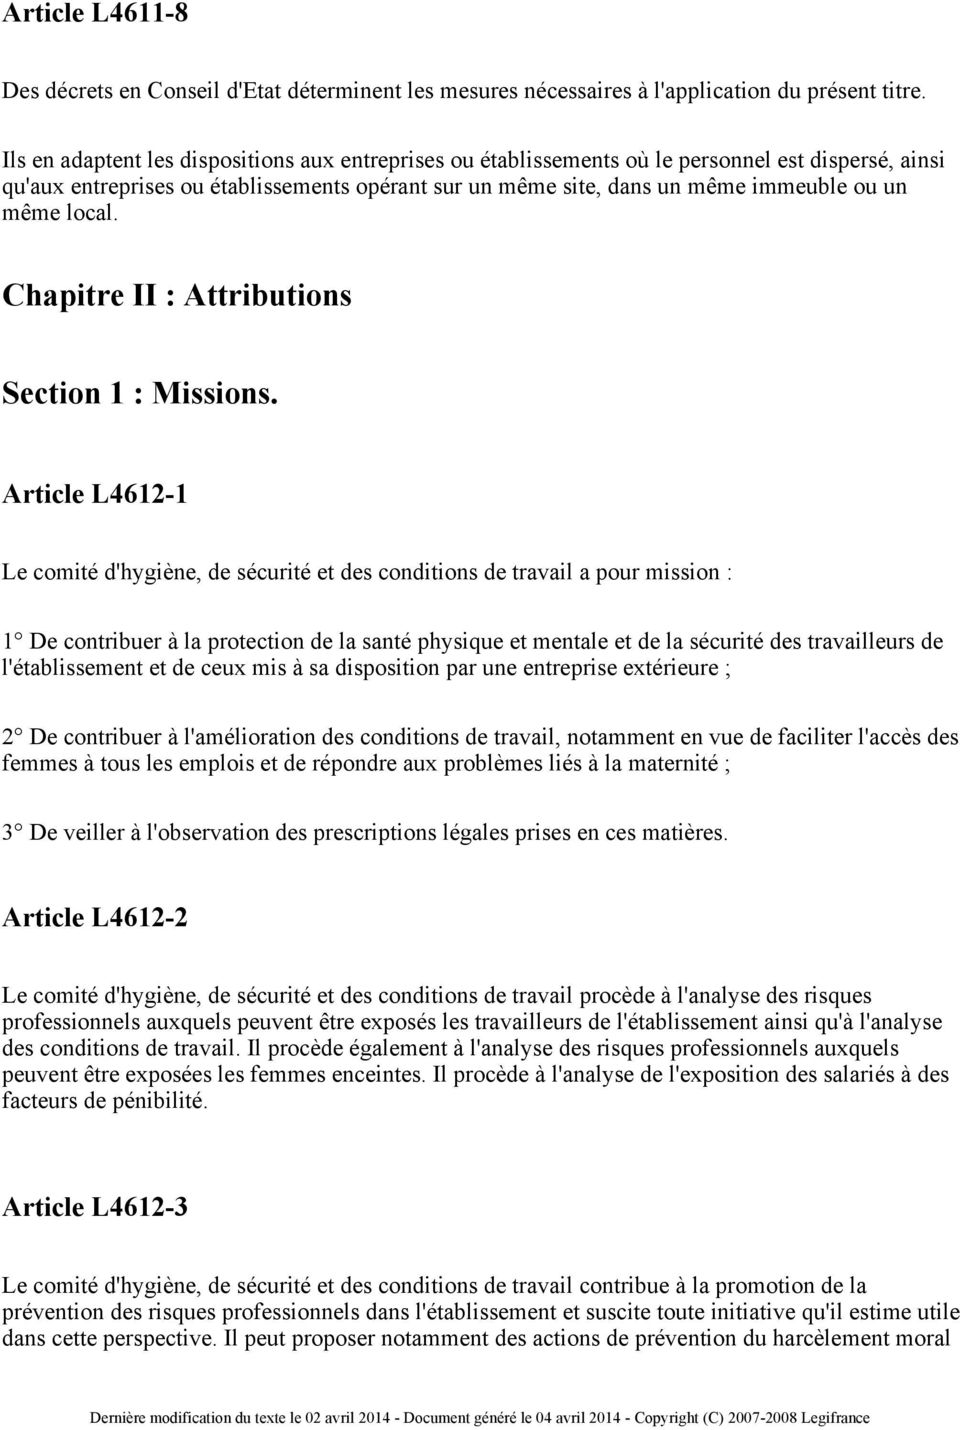 local. Chapitre II: Attributions Section 1: Missions.